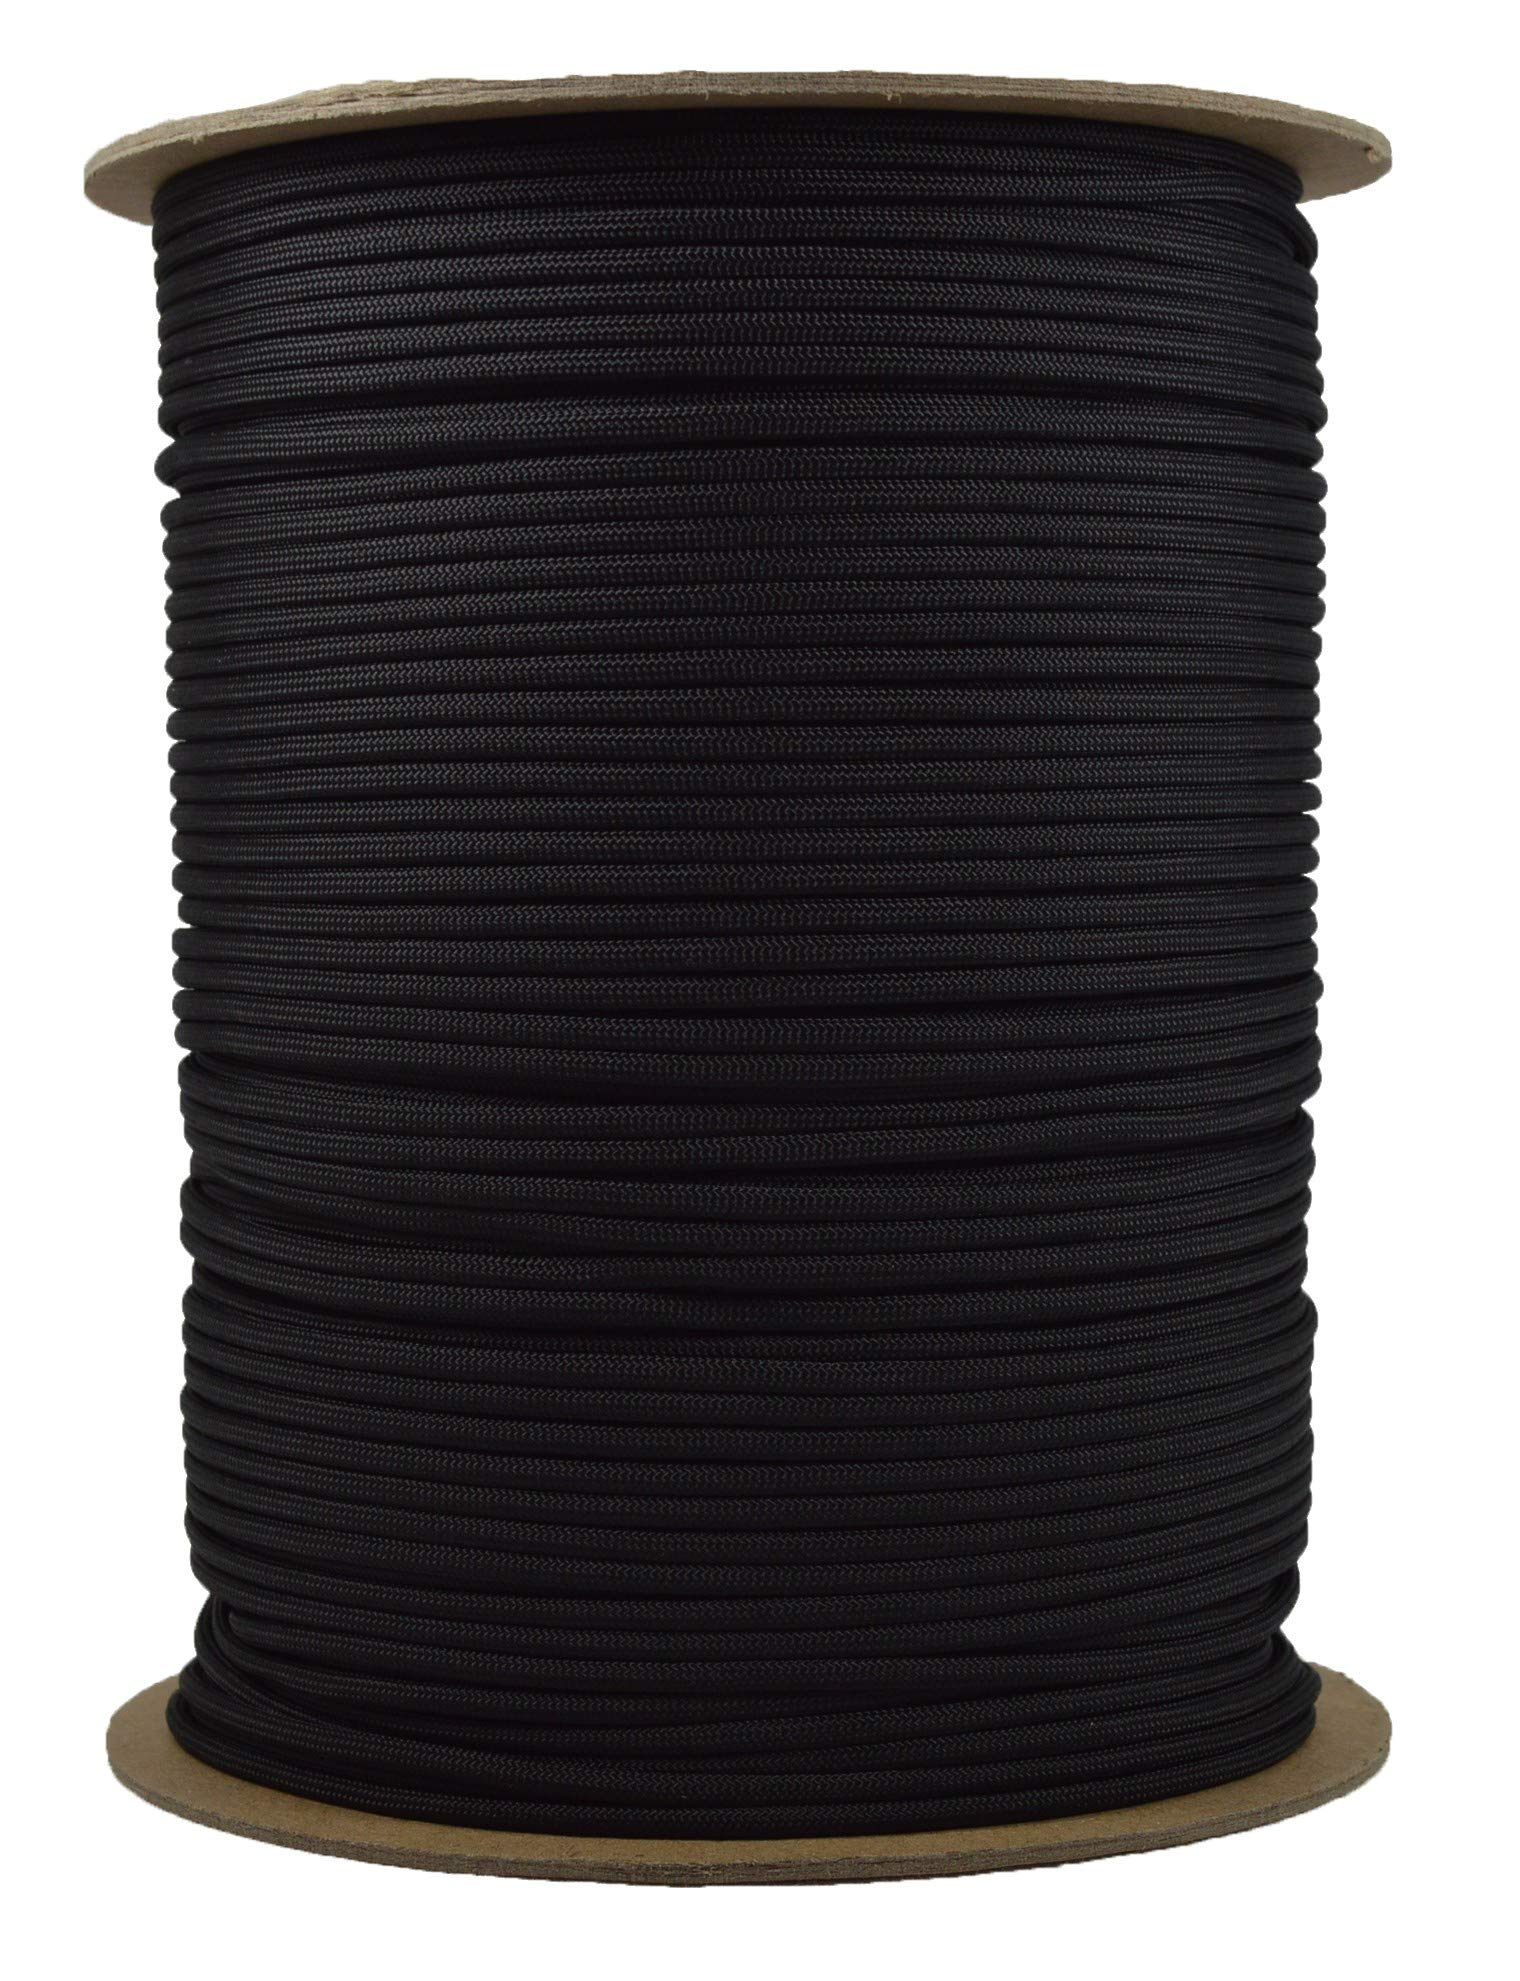 Black Mil-Spec Commercial Grade 550lb Type III Nylon Paracord - 1000 Foot Spool